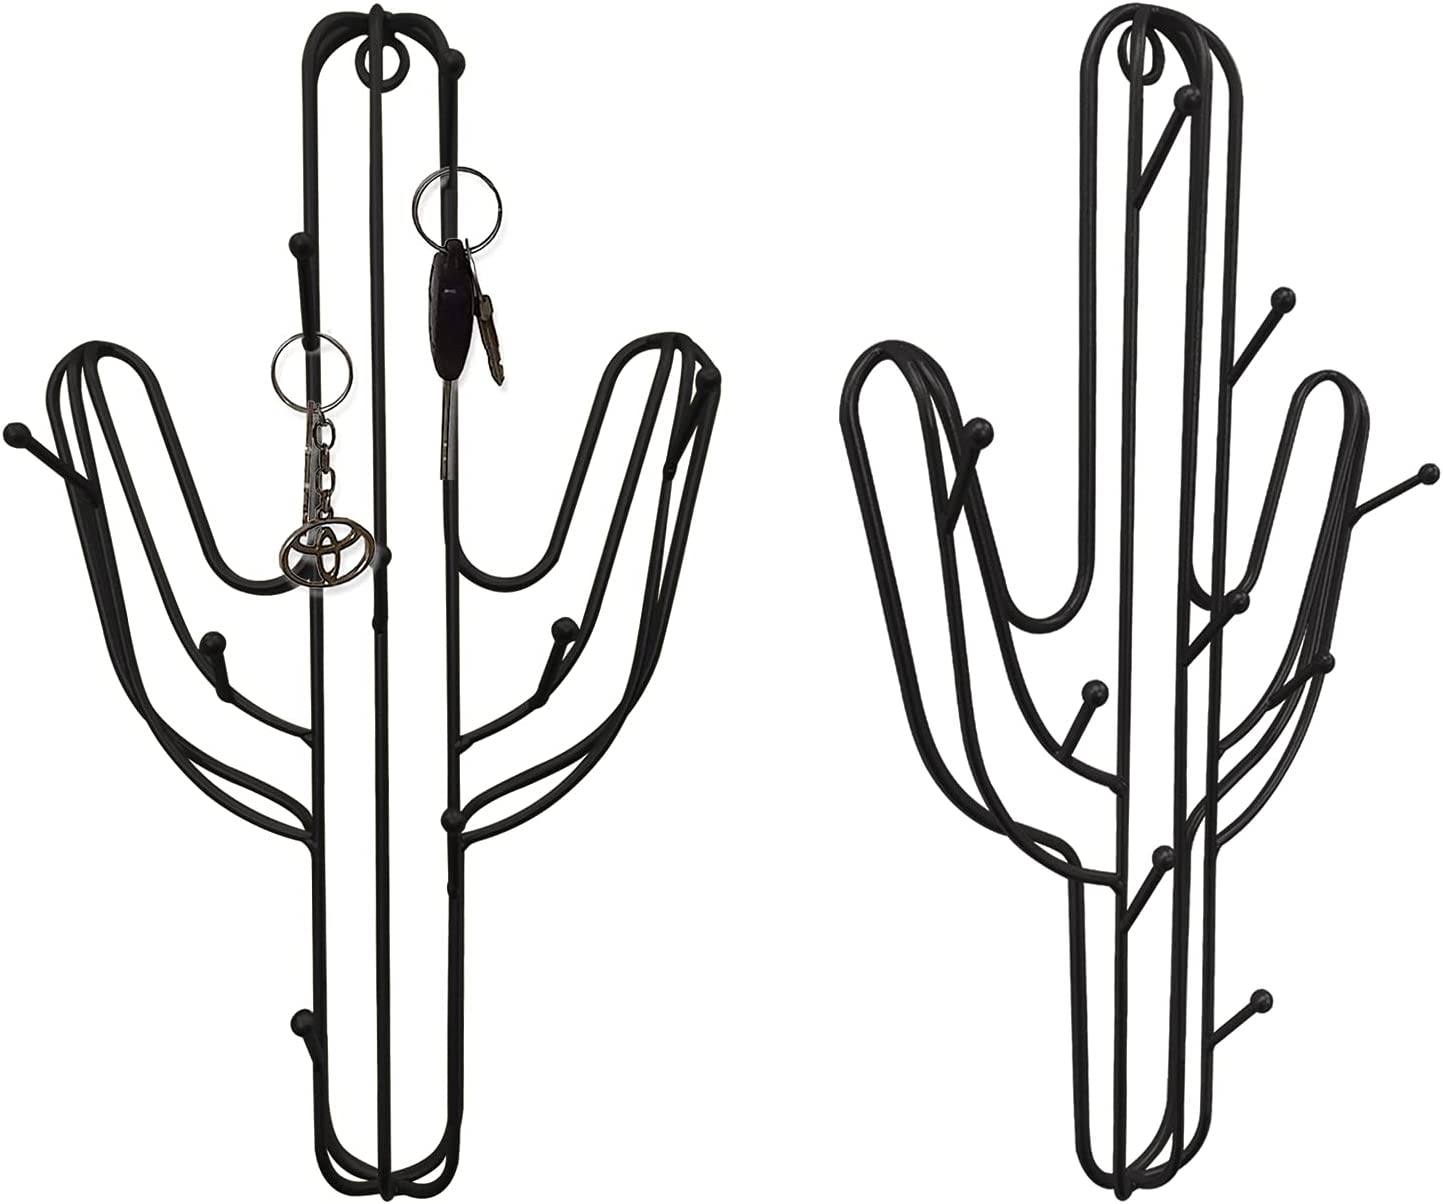 IROMAKN 9 Hooks Wall Mounted Key Holder Cactus Shape Decorative Metal Organizer Rack Wall Hangers with Screw Wall Decor Perfect for Entryway Mudroom Hallway Office